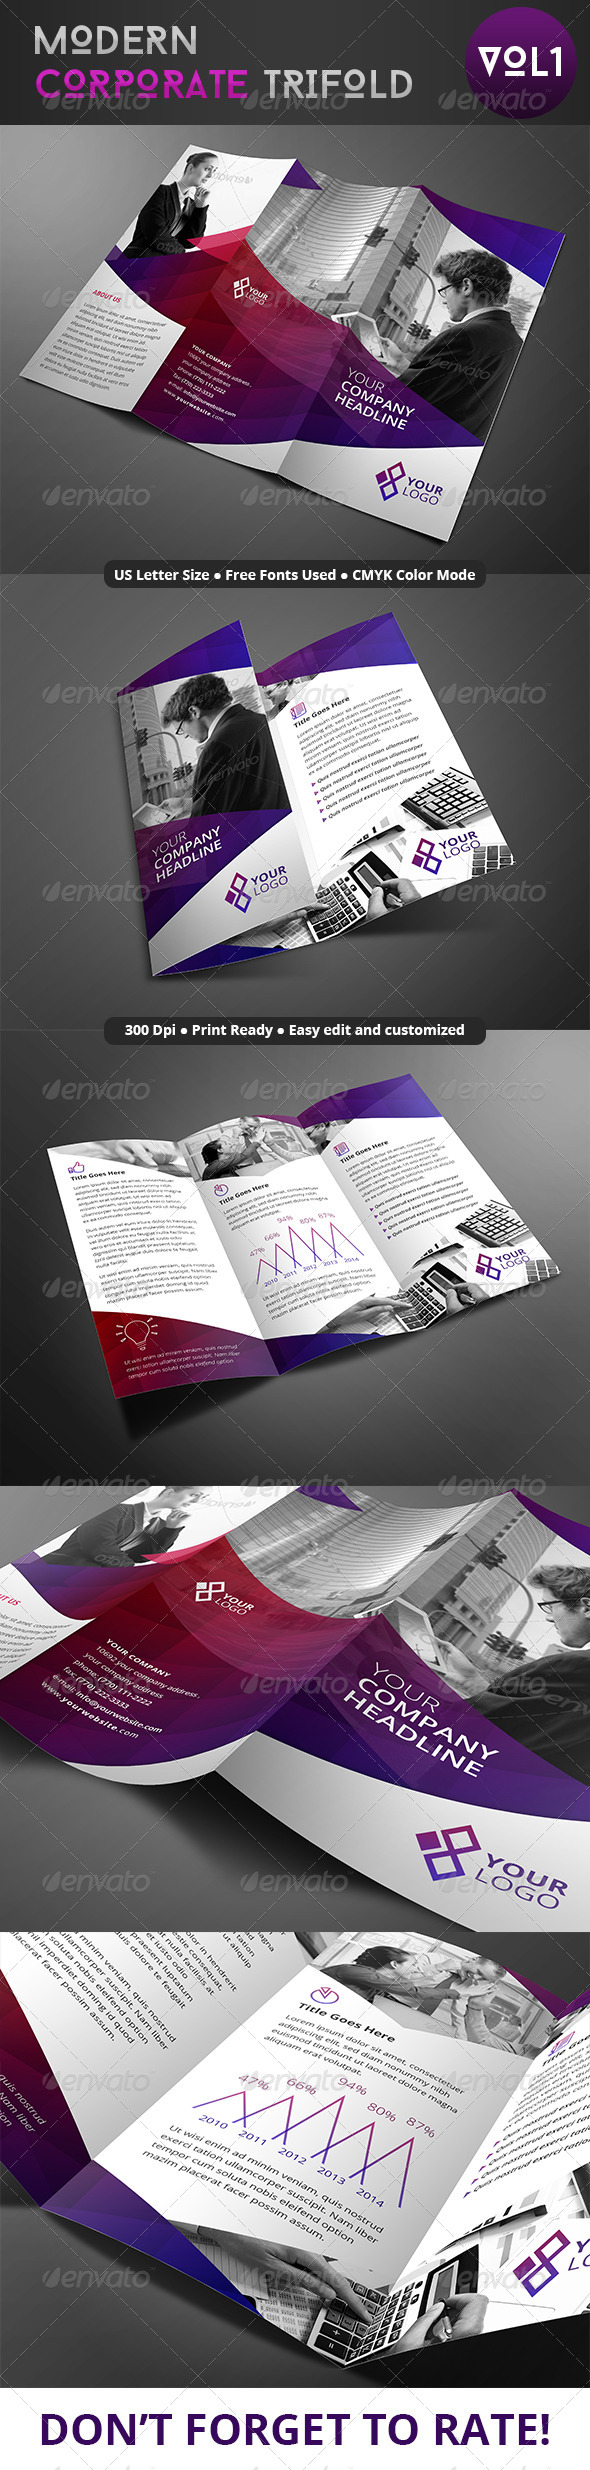 Modern Corporate Trifold